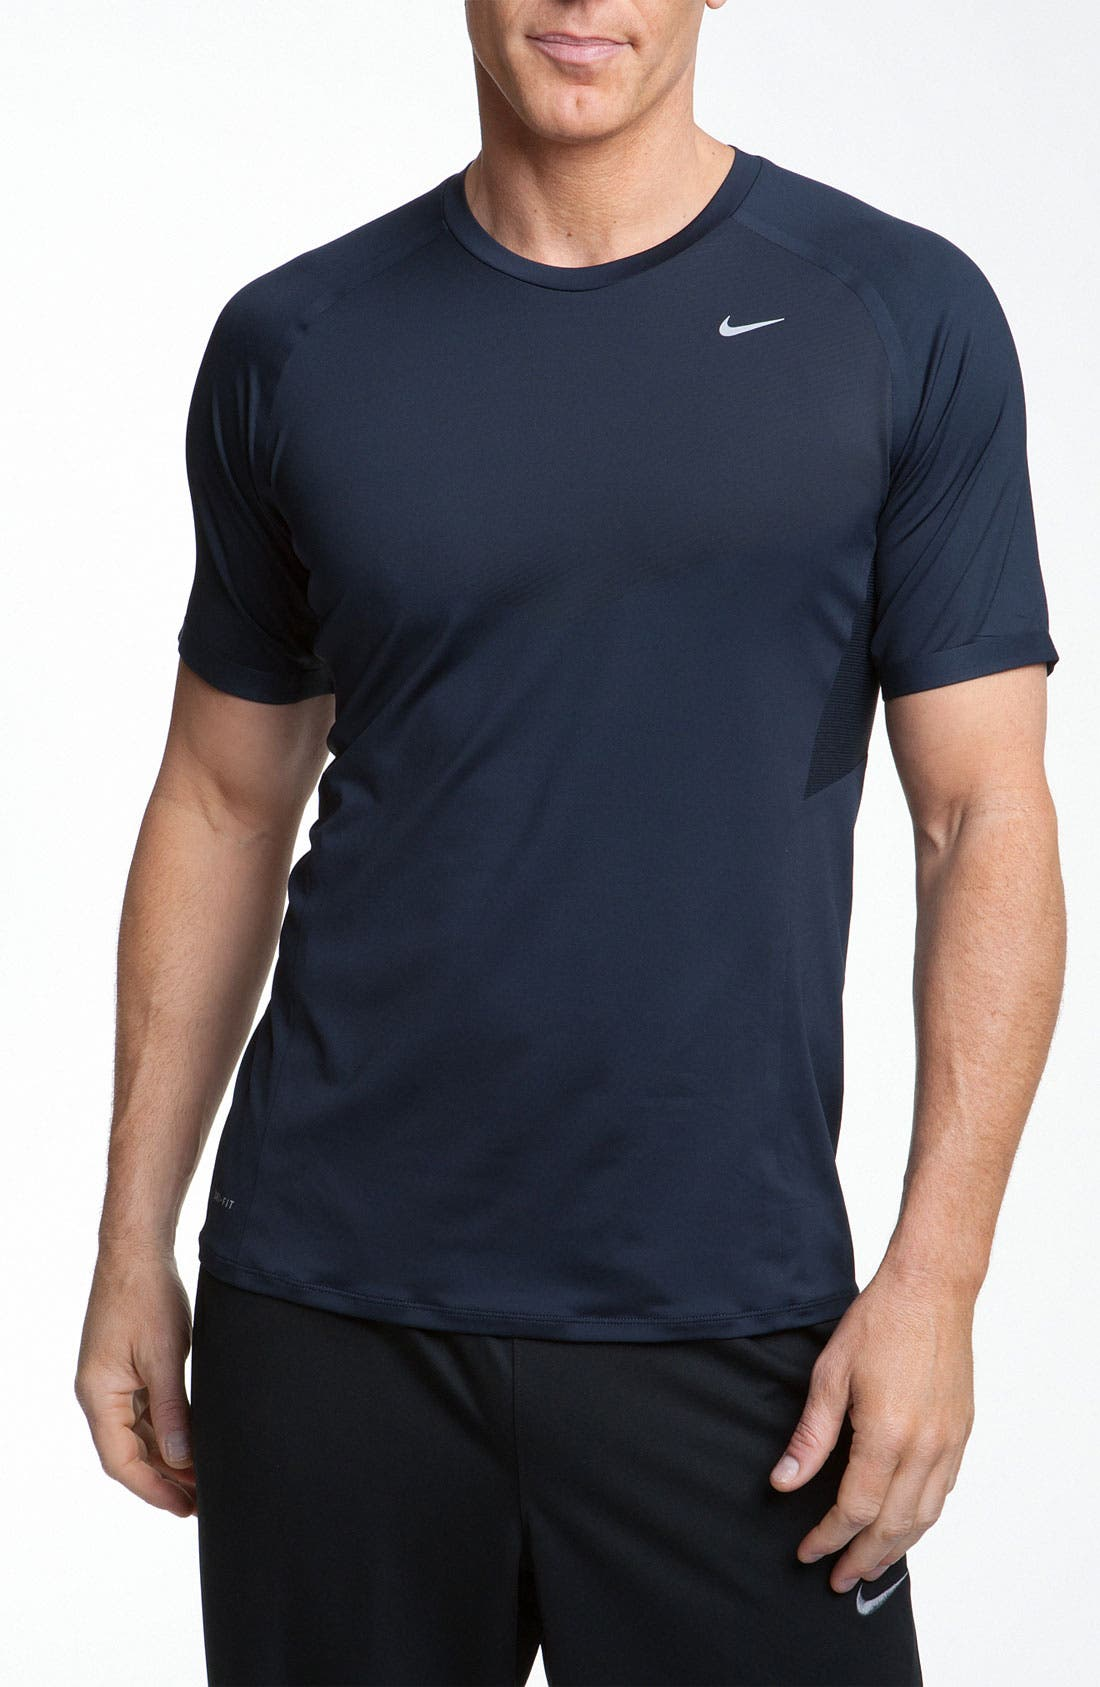 Alternate Image 1 Selected - Nike 'Speed' Short Sleeve Top